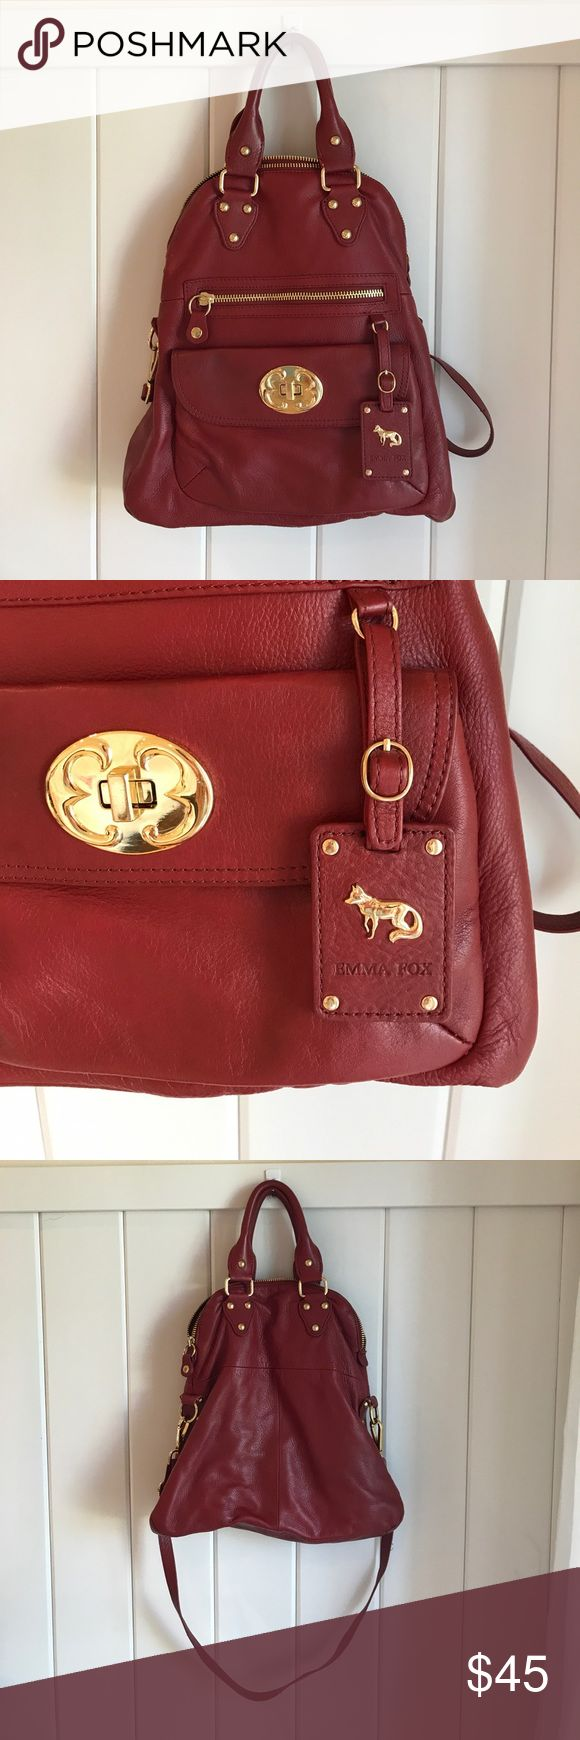 Burgundy Emma Fox cross body bag Burgundy Emma Fox cross body bag. Good used condition, leather is in perfect condition. Only signs of wear are a couple of strings loose on strap. I bought it discounted because the interior pocket came unstitched in store. Still functional and in great shape. Lots of life left in this beautifully made purse. Looks cute on arm or cross-body. Offers welcome, if reasonable. Smoke/pet free home. Emma Fox Bags Crossbody Bags